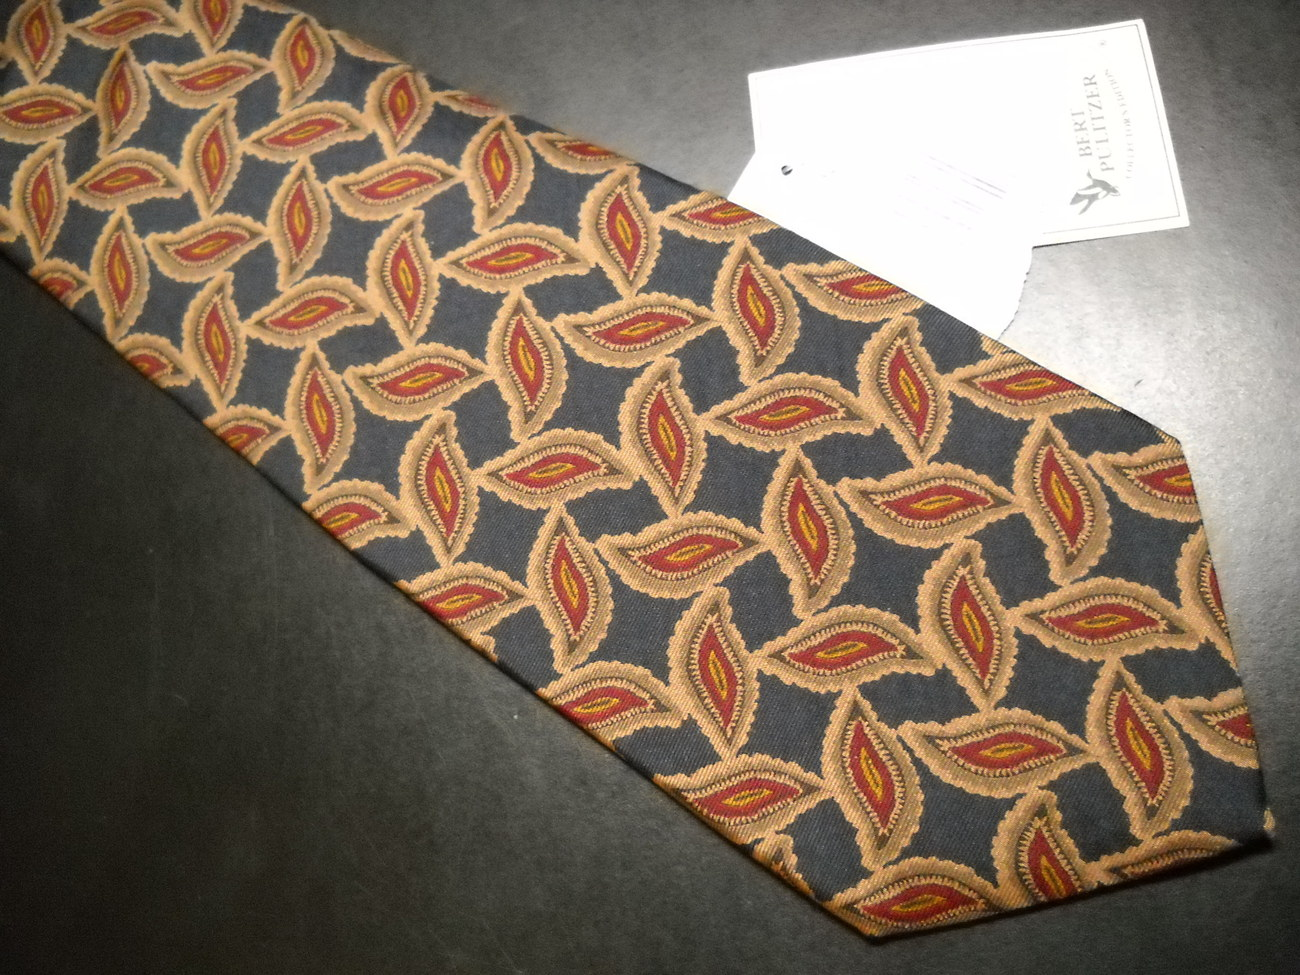 Bert Pulitzer Neck Tie Browns and Blues Never Used and Unworn with Tags